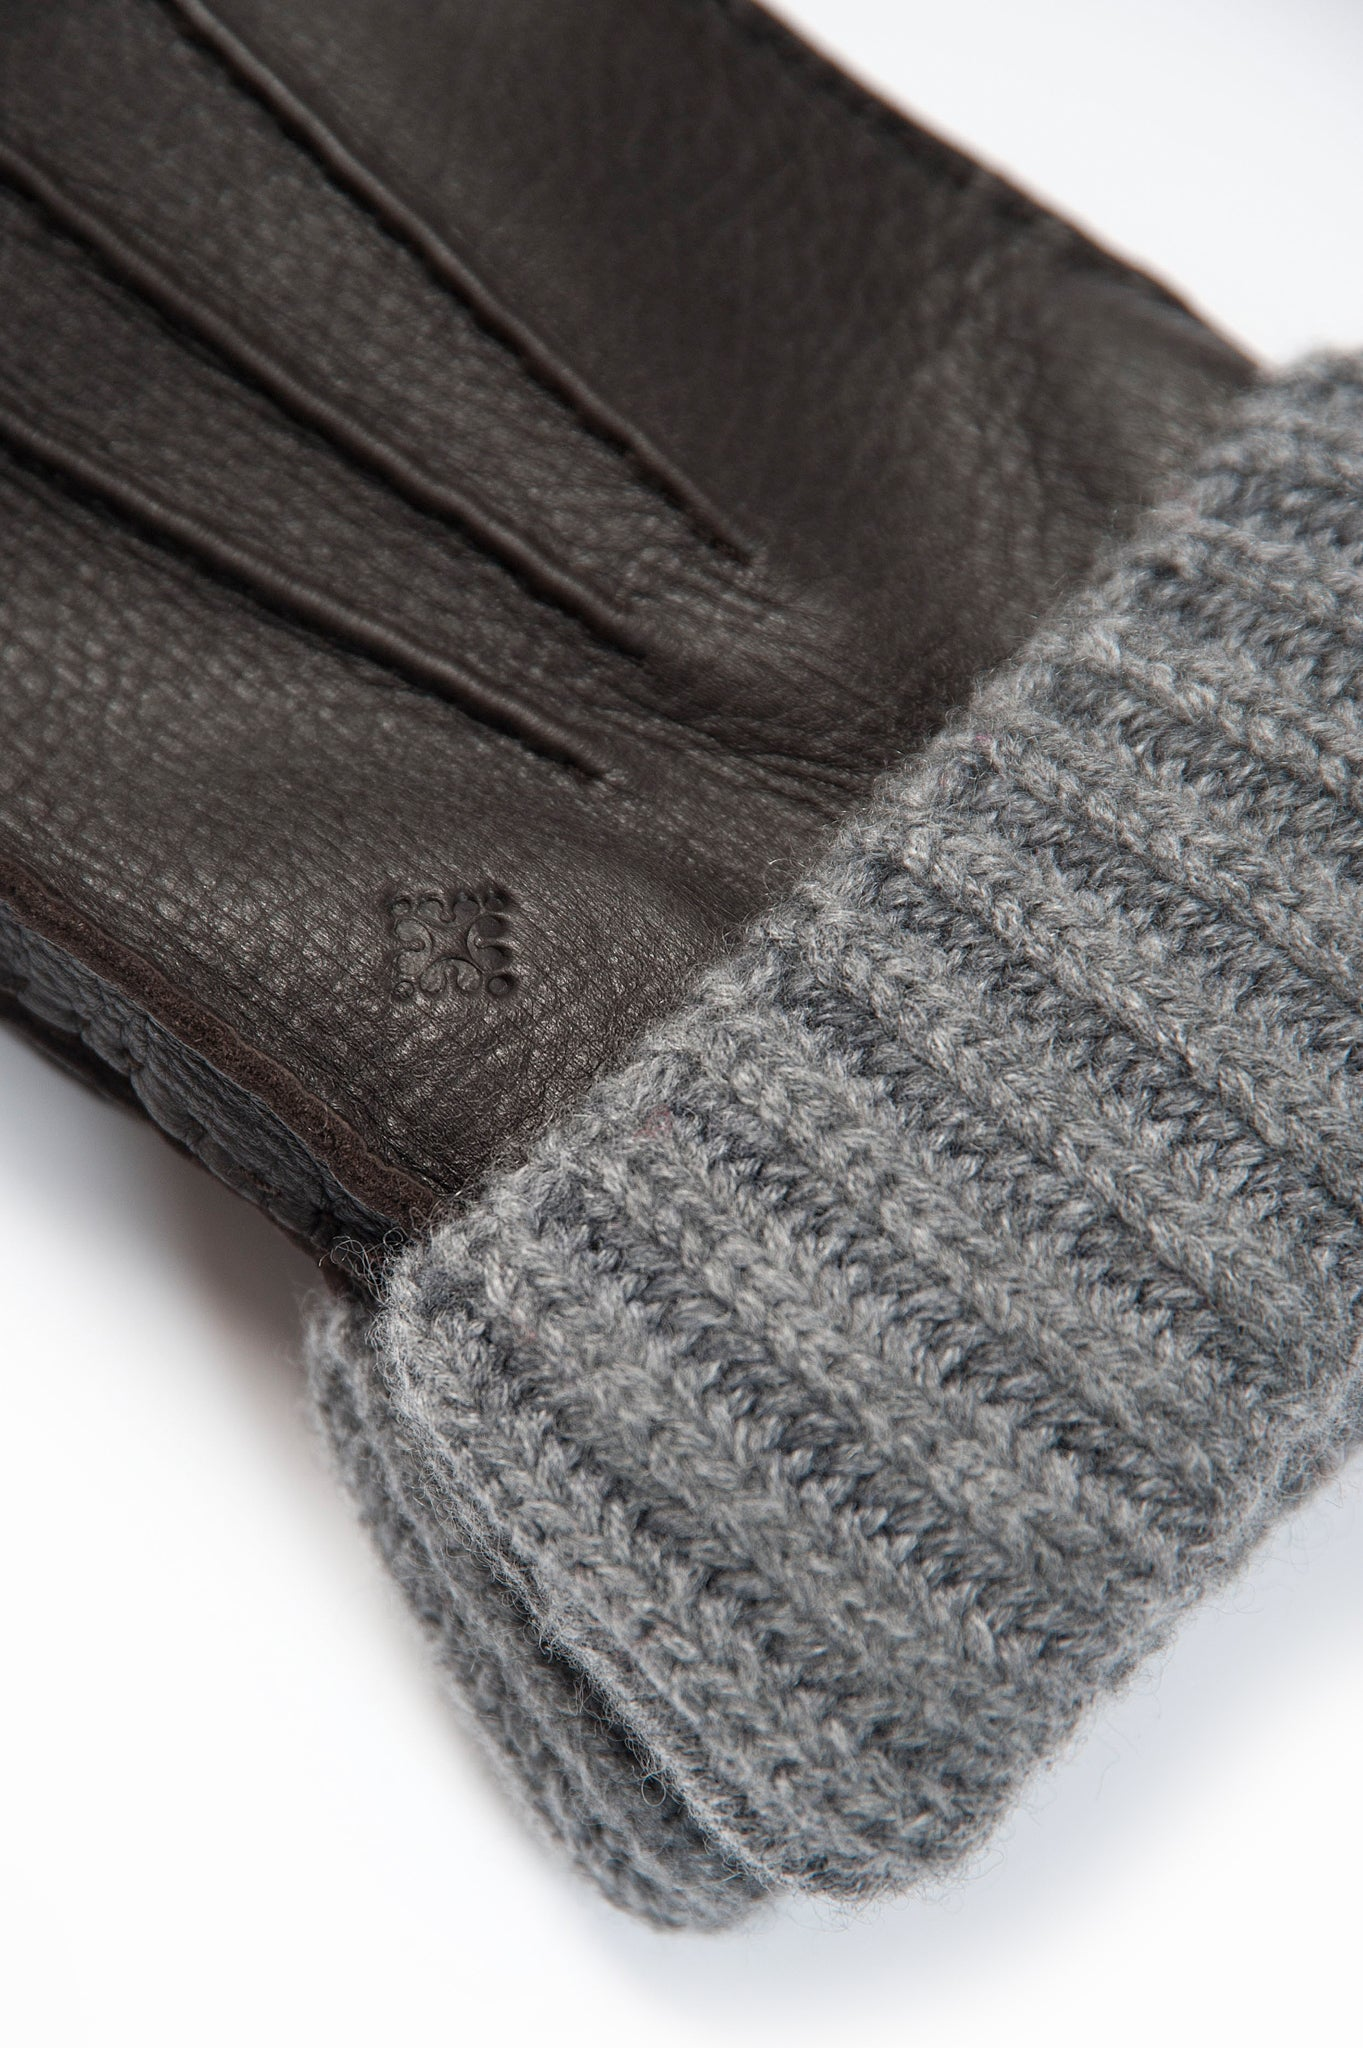 Victor 100% Soft Deer and Interior in Cashmere Gloves (dark brown and grey melange)